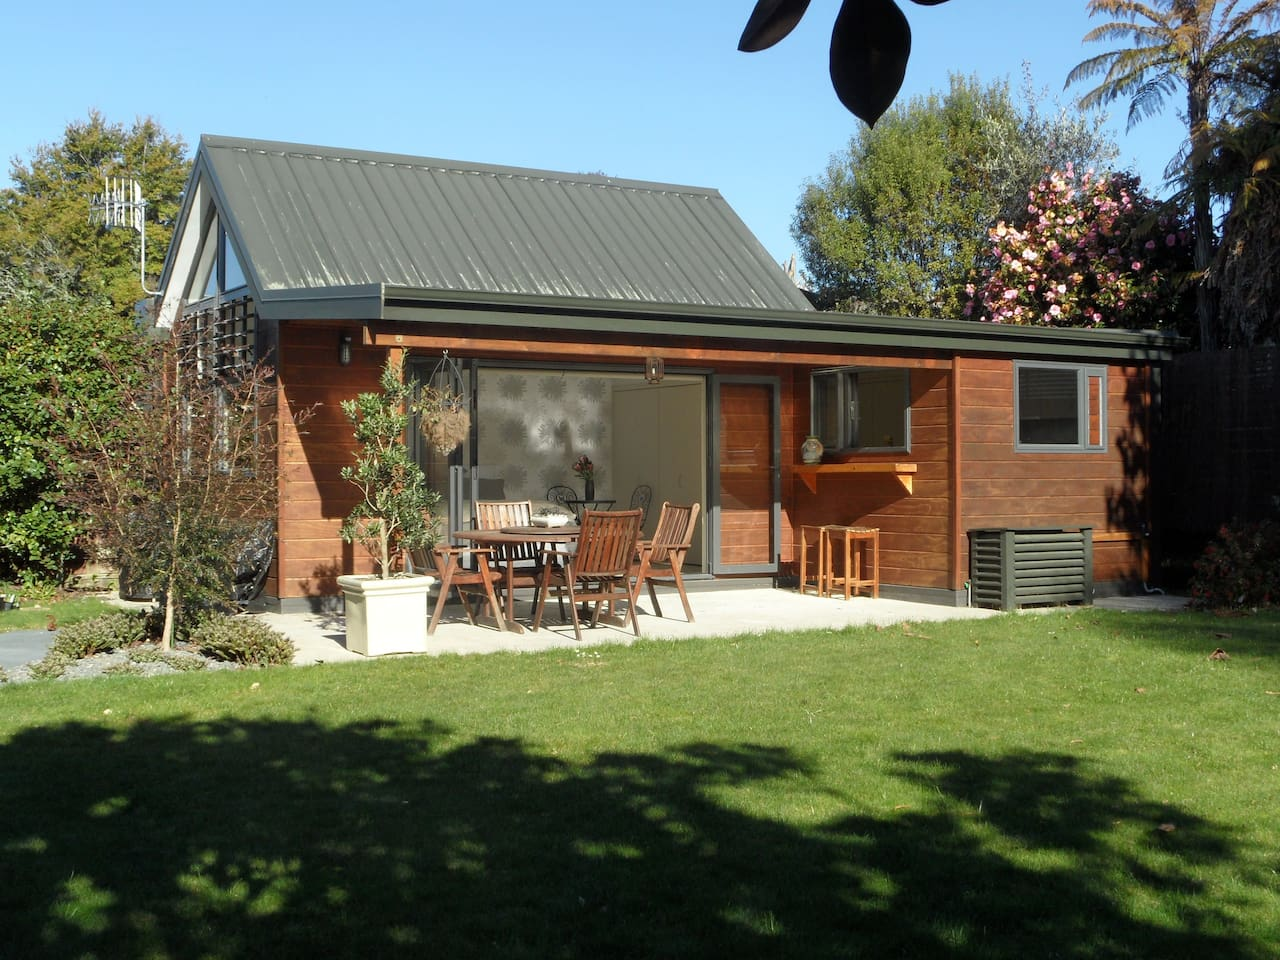 The Summer House bathed in sun!